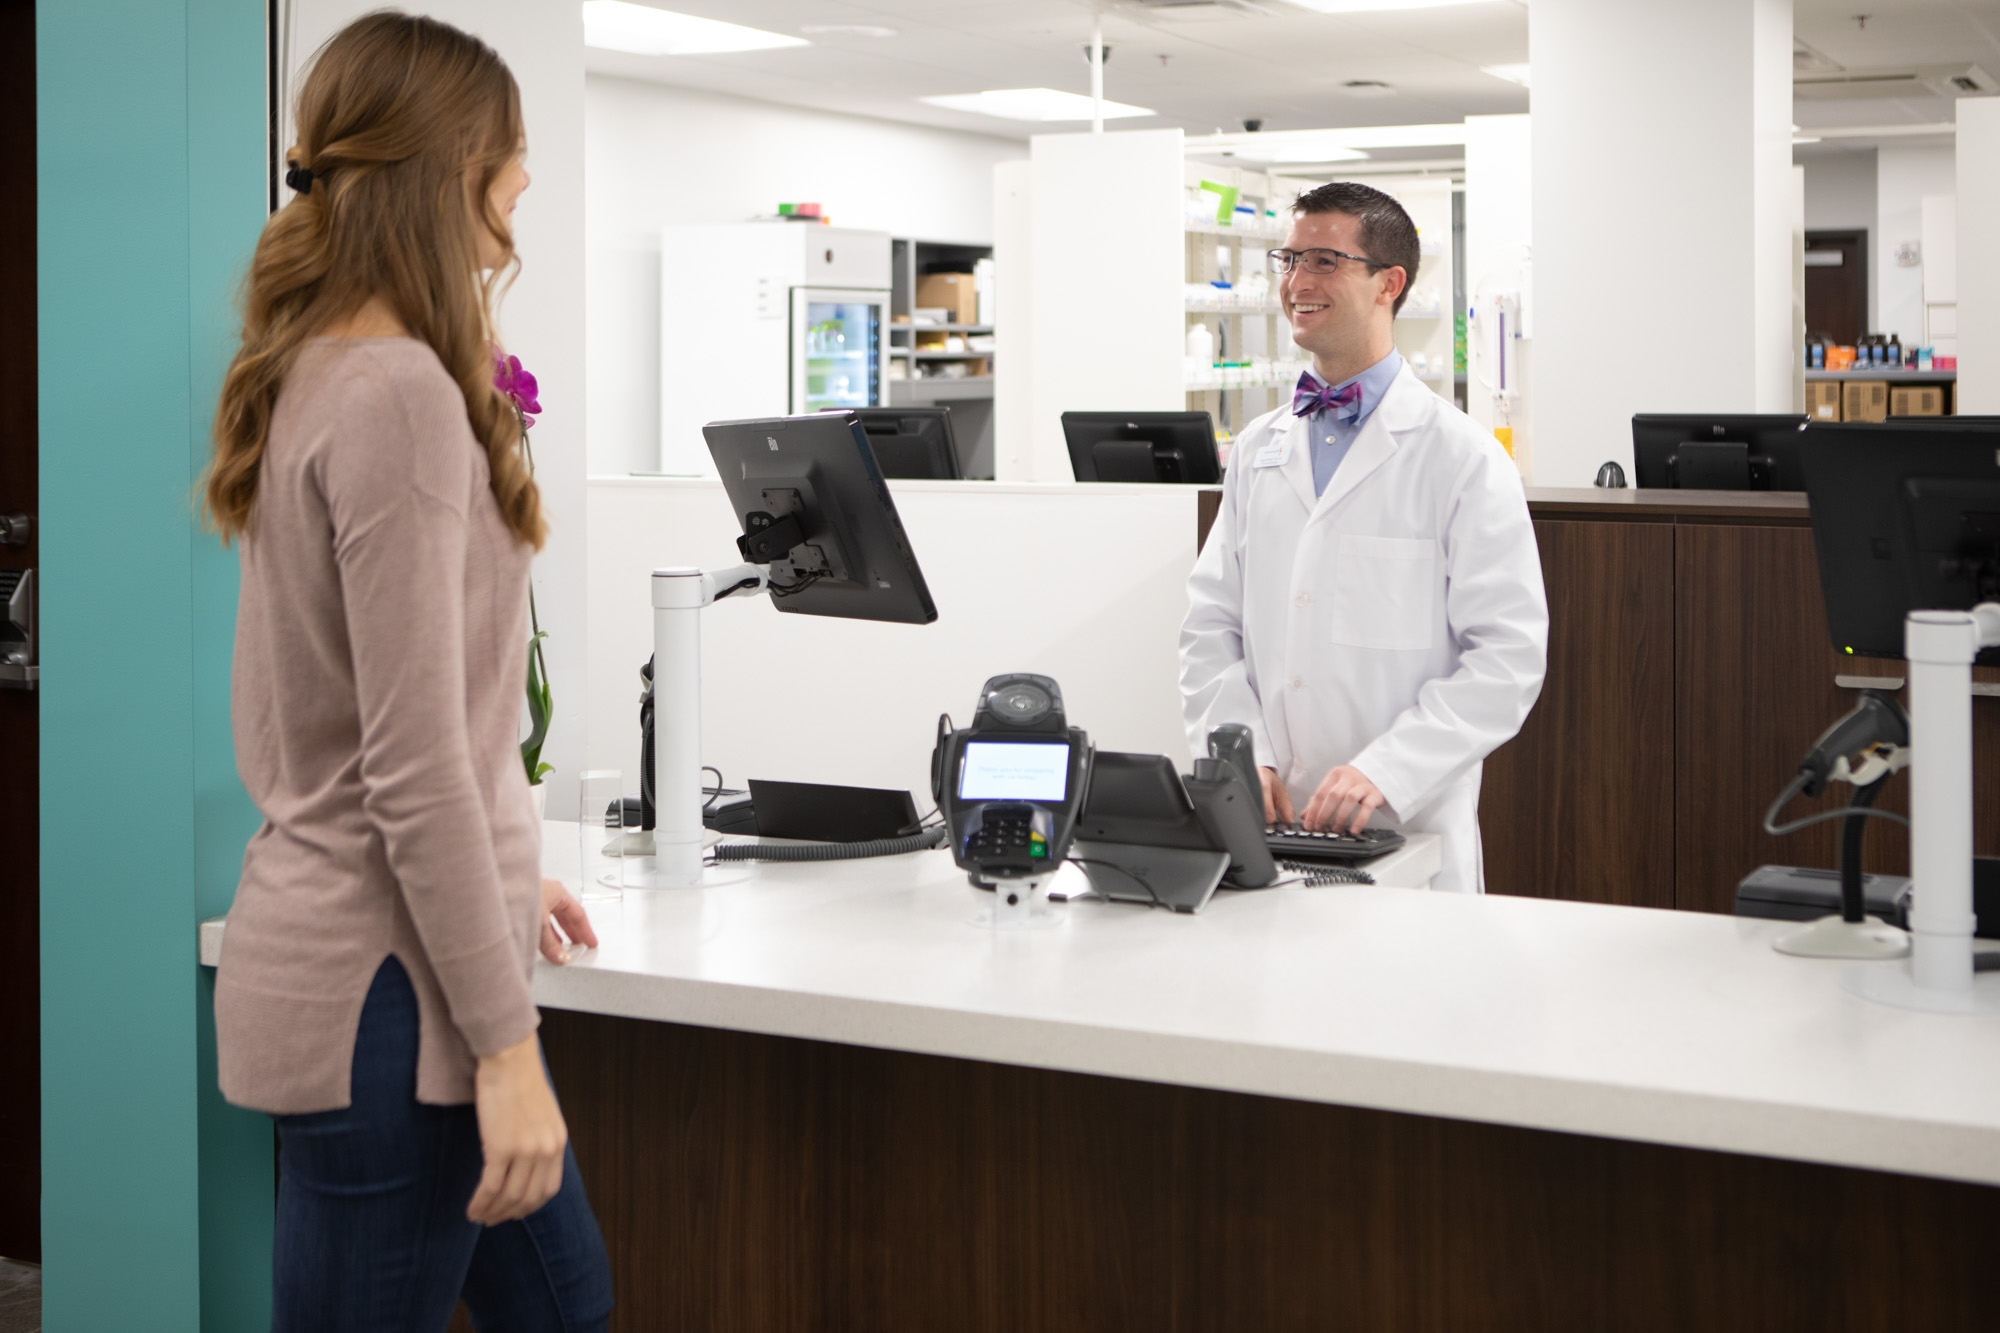 Team members have access to an onsite wellness center and pharmacy, making it convenient to get care when they need it